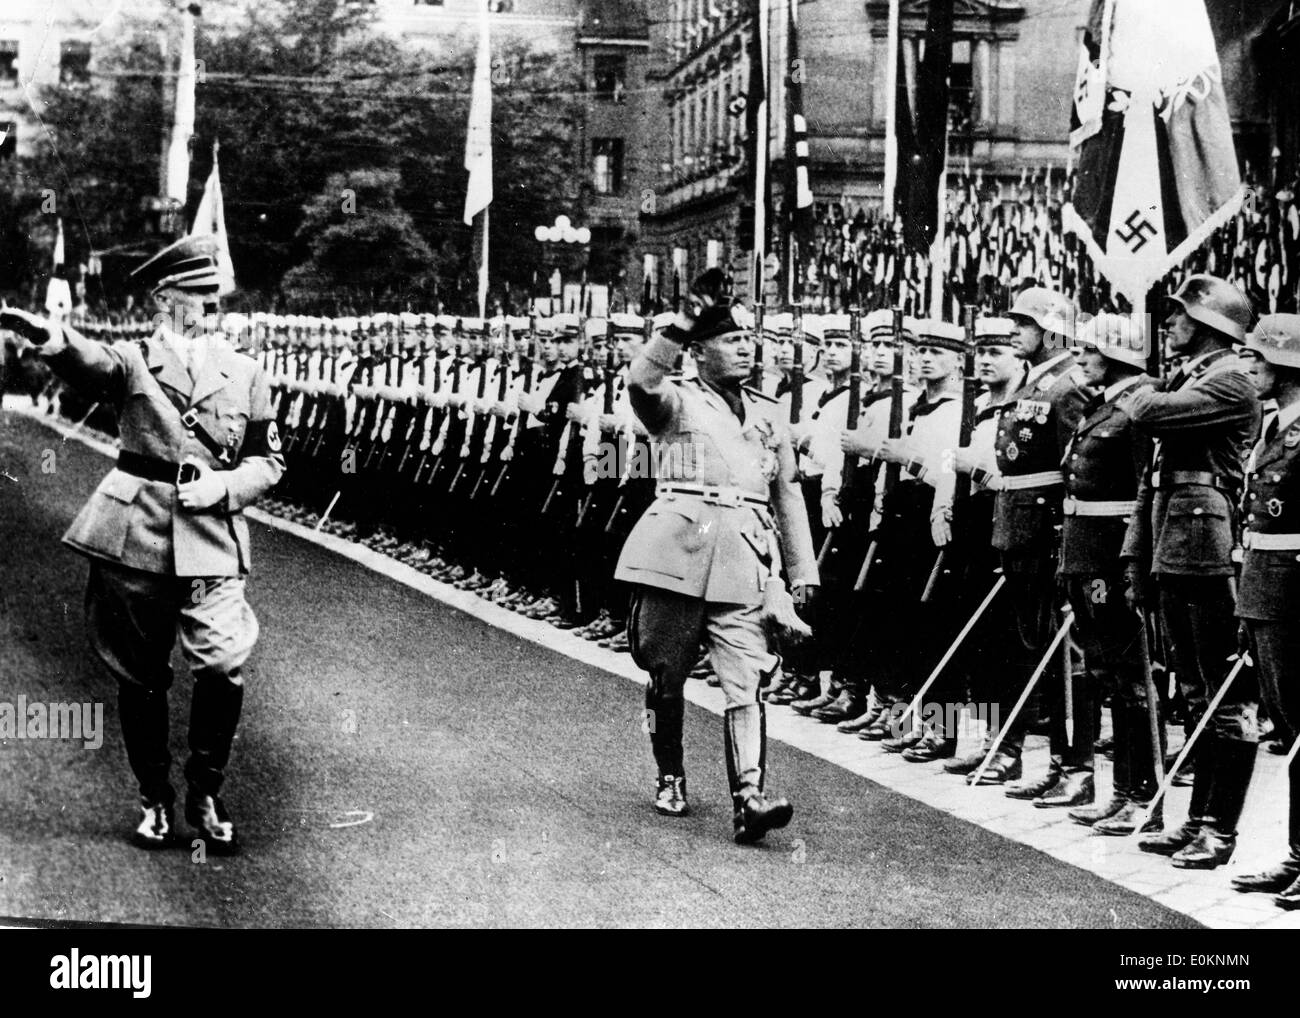 Adolf Hitler and Mussolini inspecting Military and Naval Guards - Stock Image